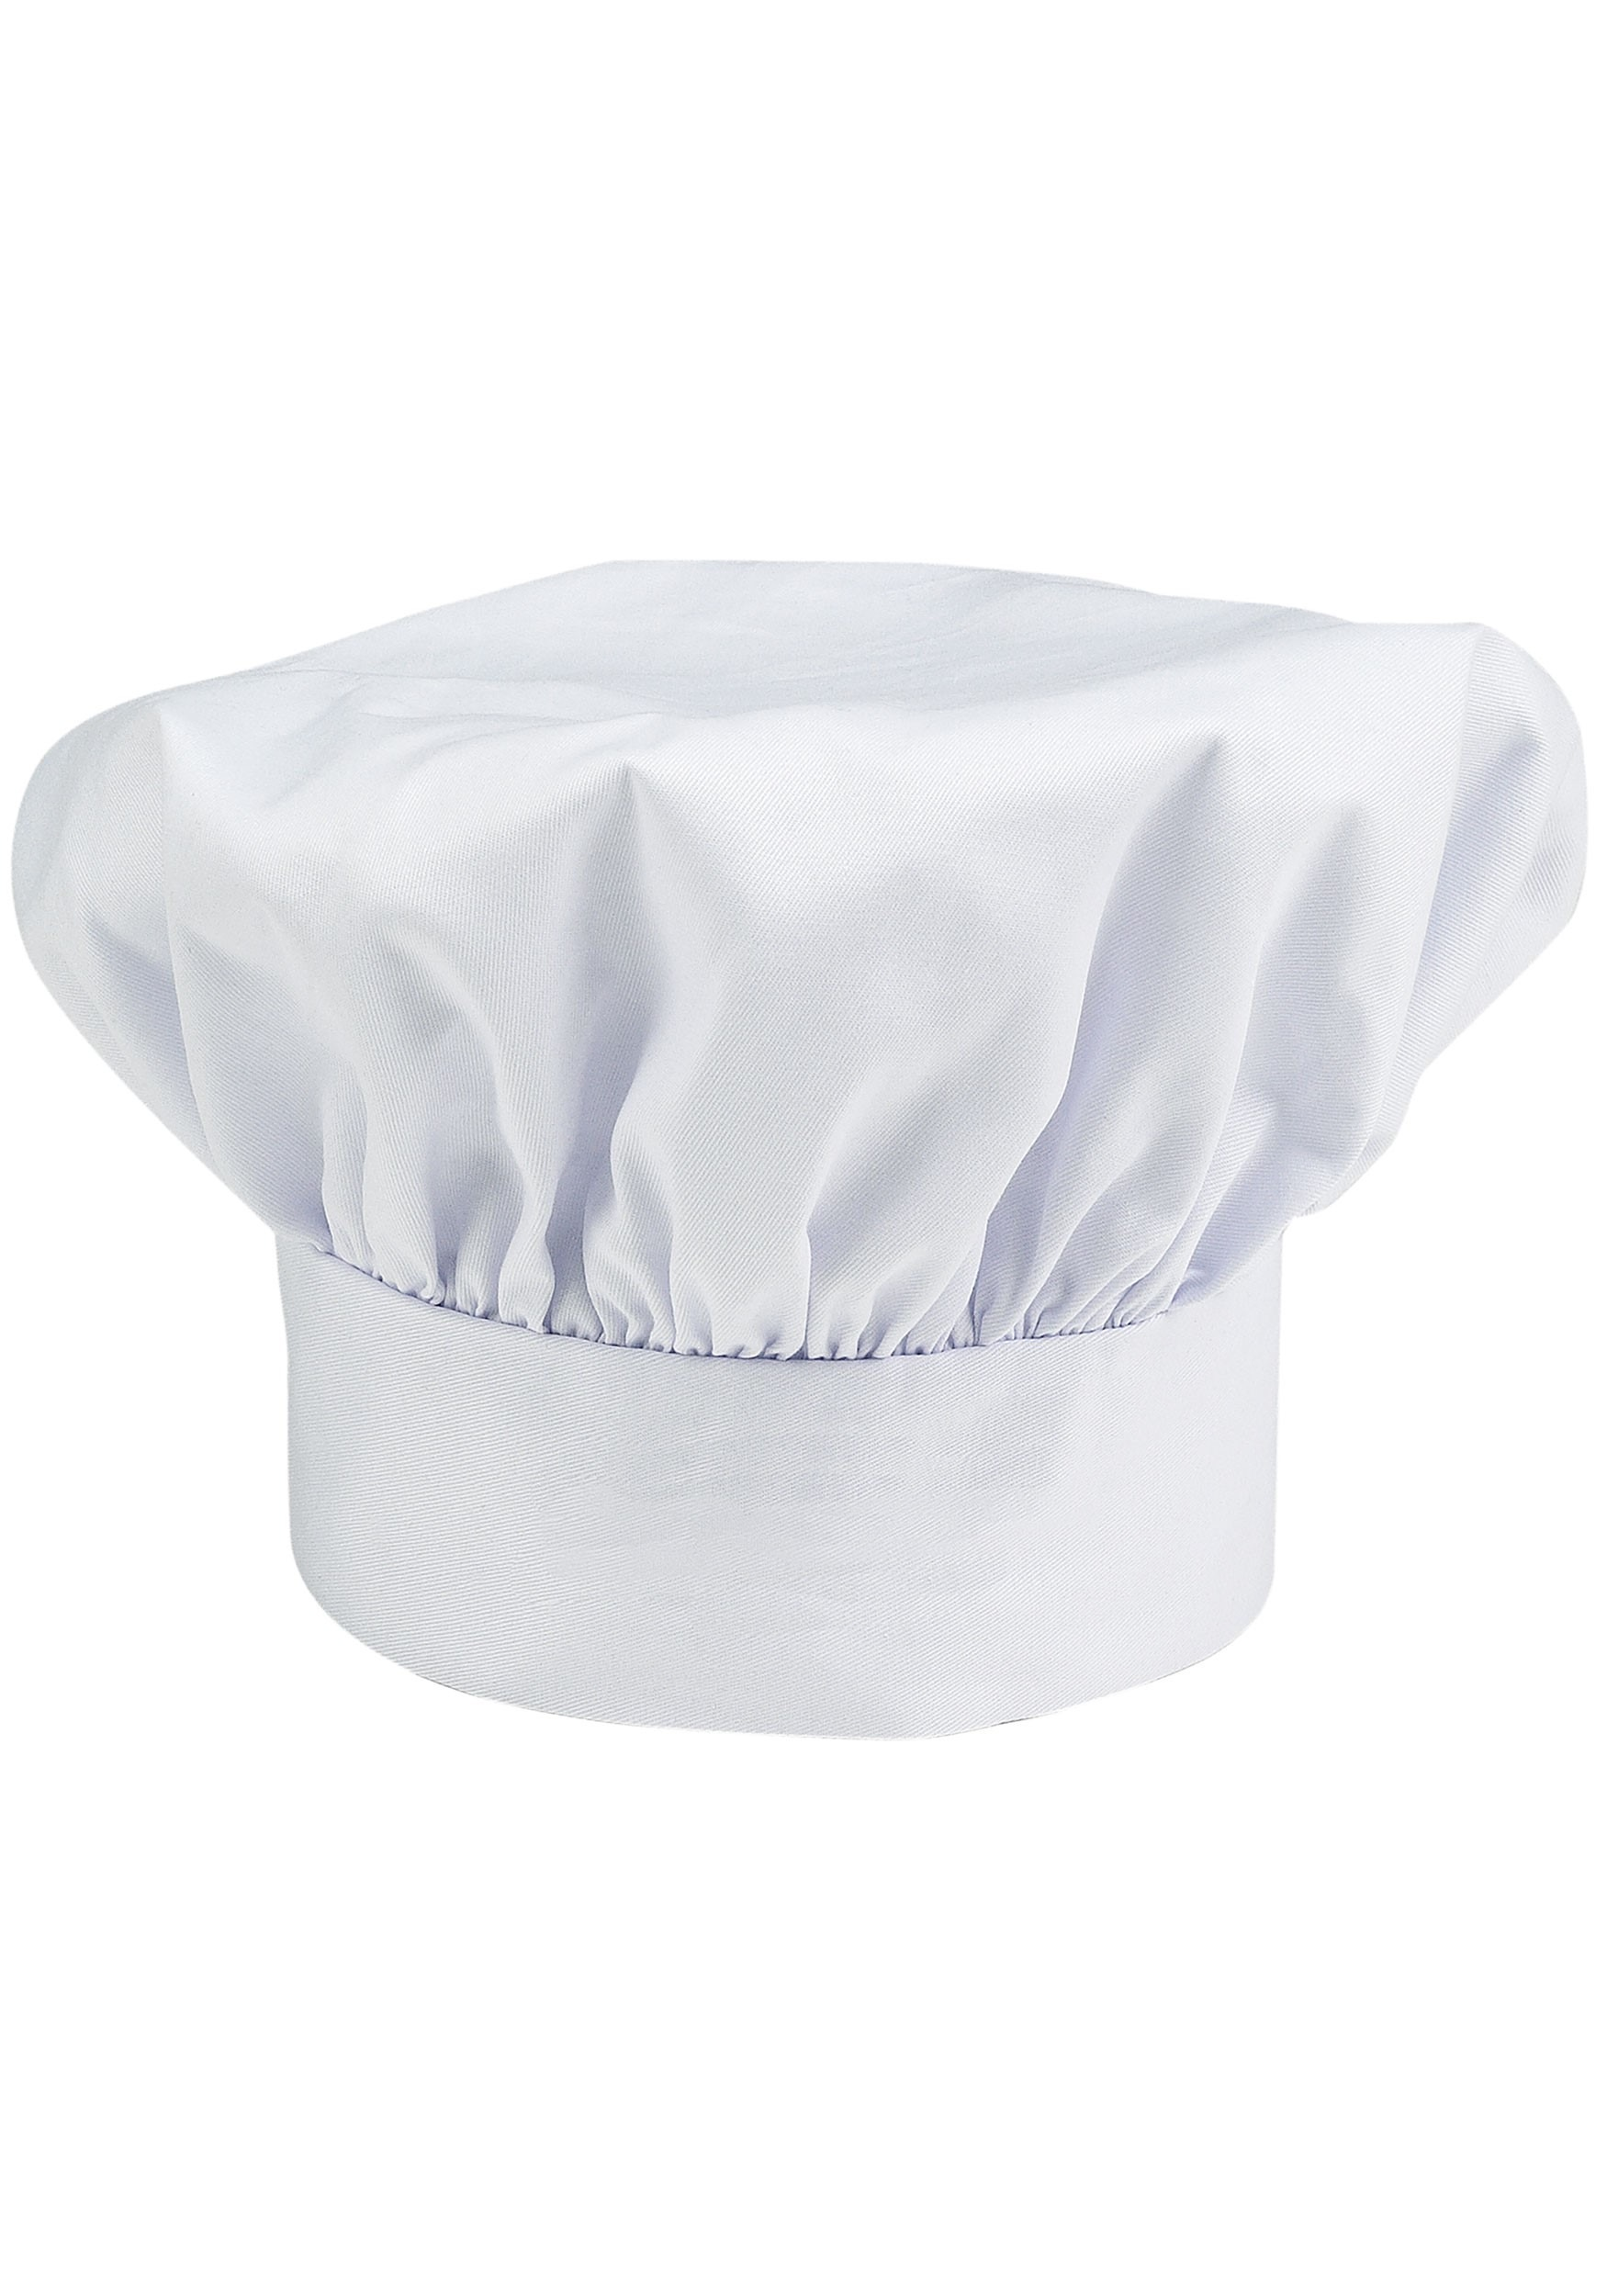 INOpets.com Anything for Pets Parents & Their Pets Chef Hat for Children